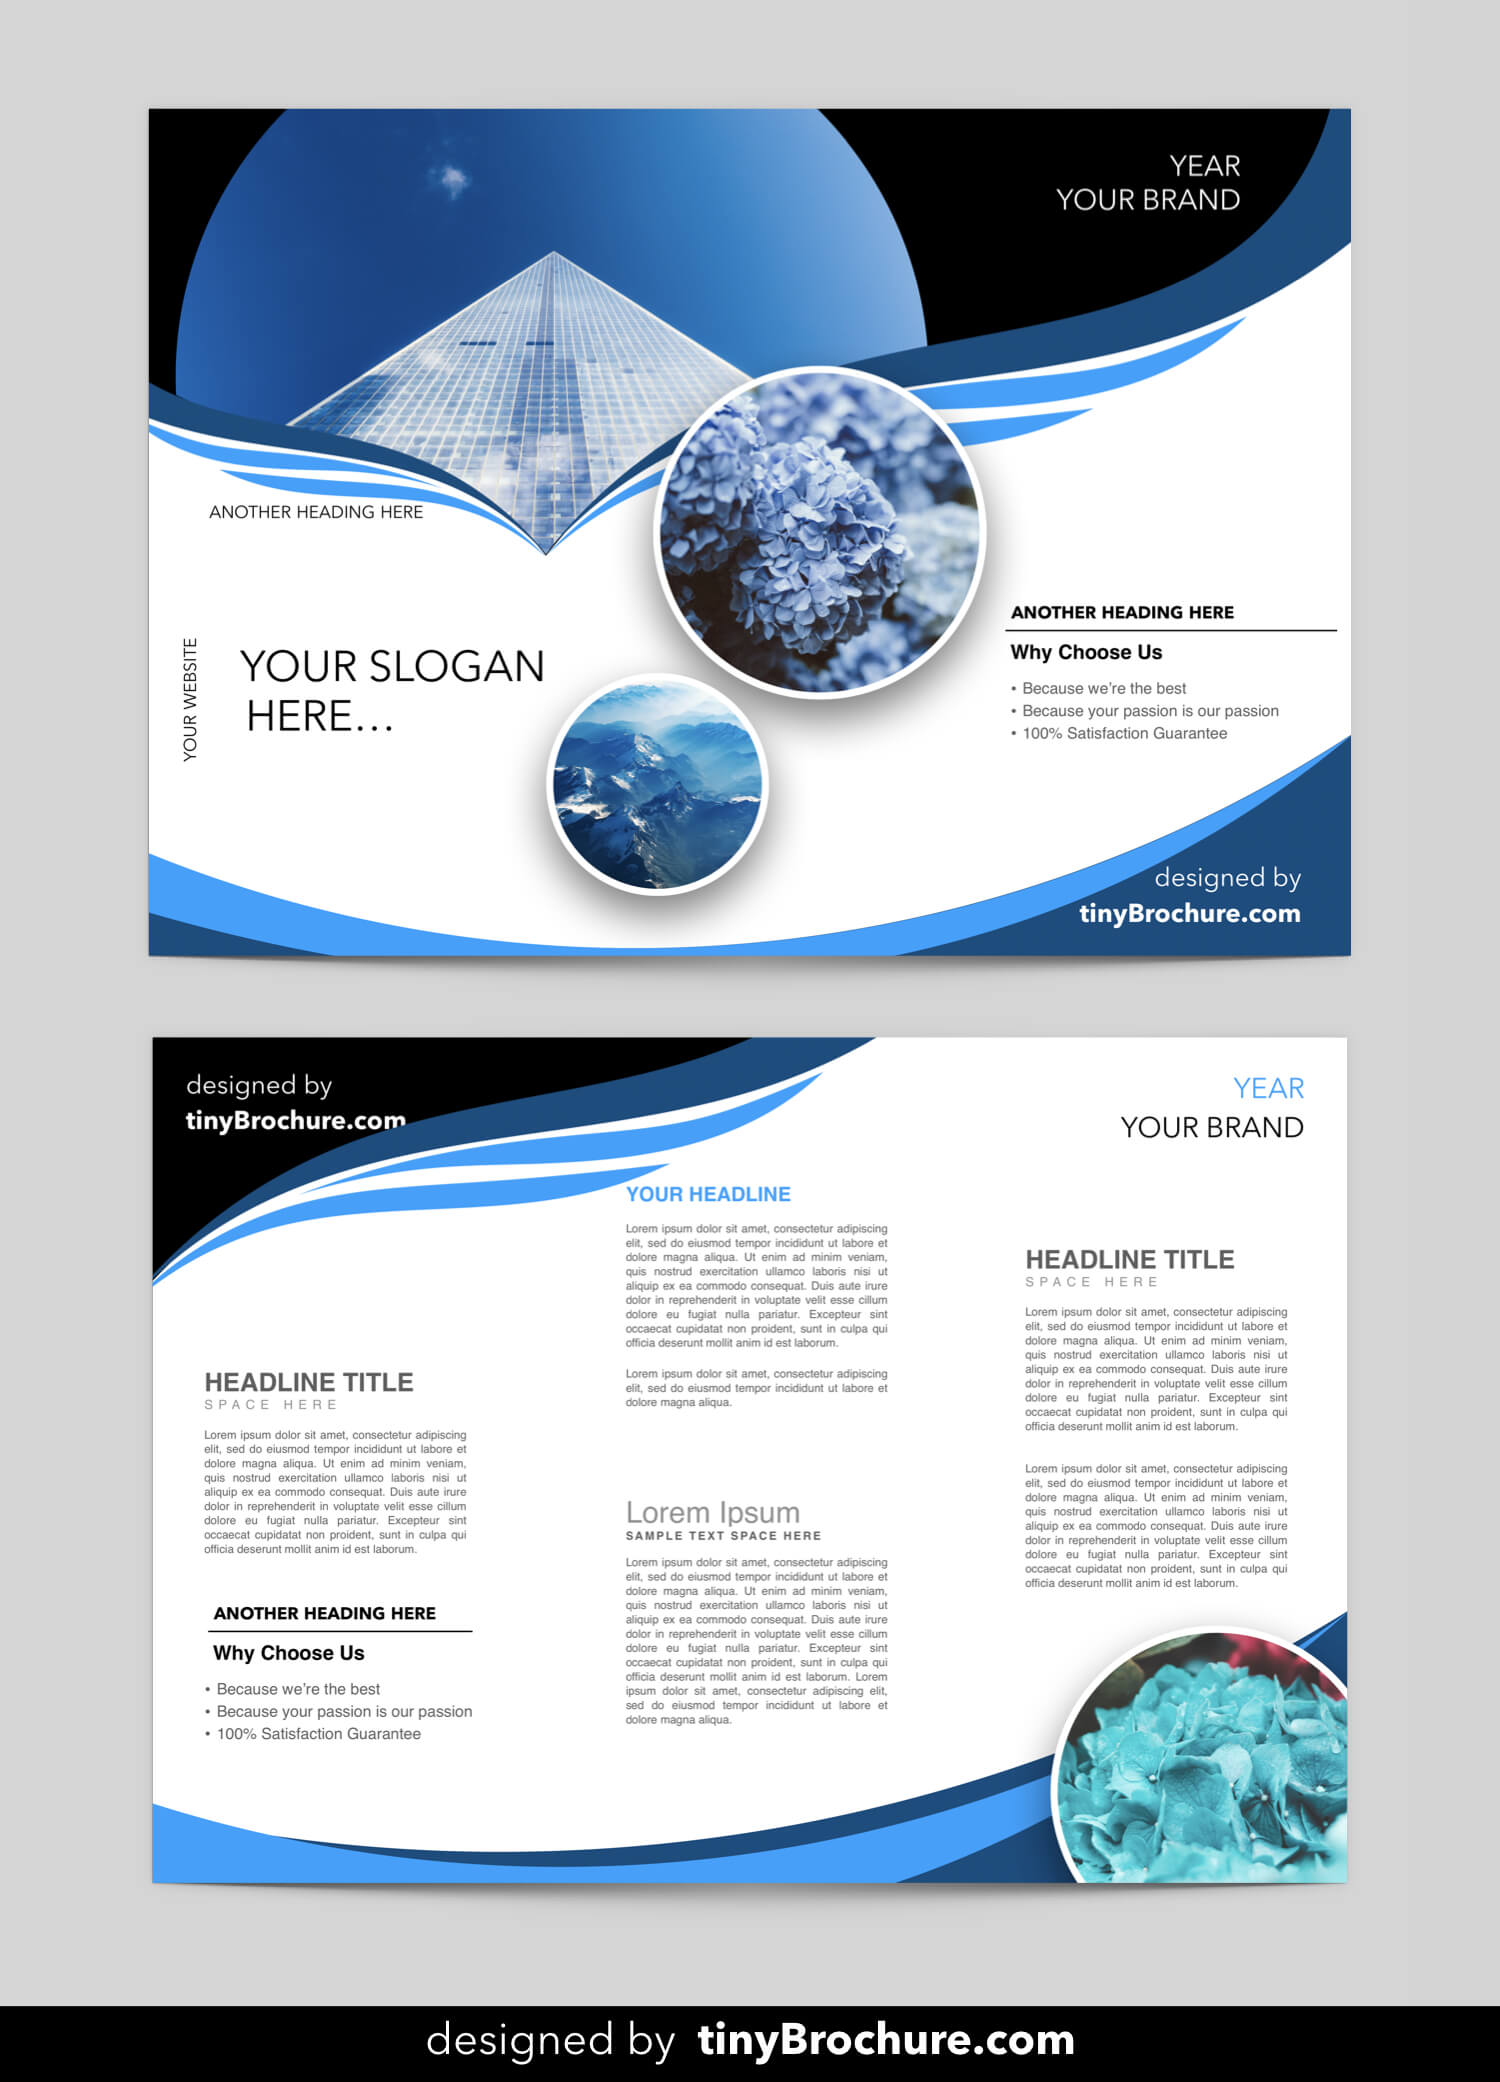 Editable Brochure Template Word Free Download | Word Intended For Microsoft Word Brochure Template Free